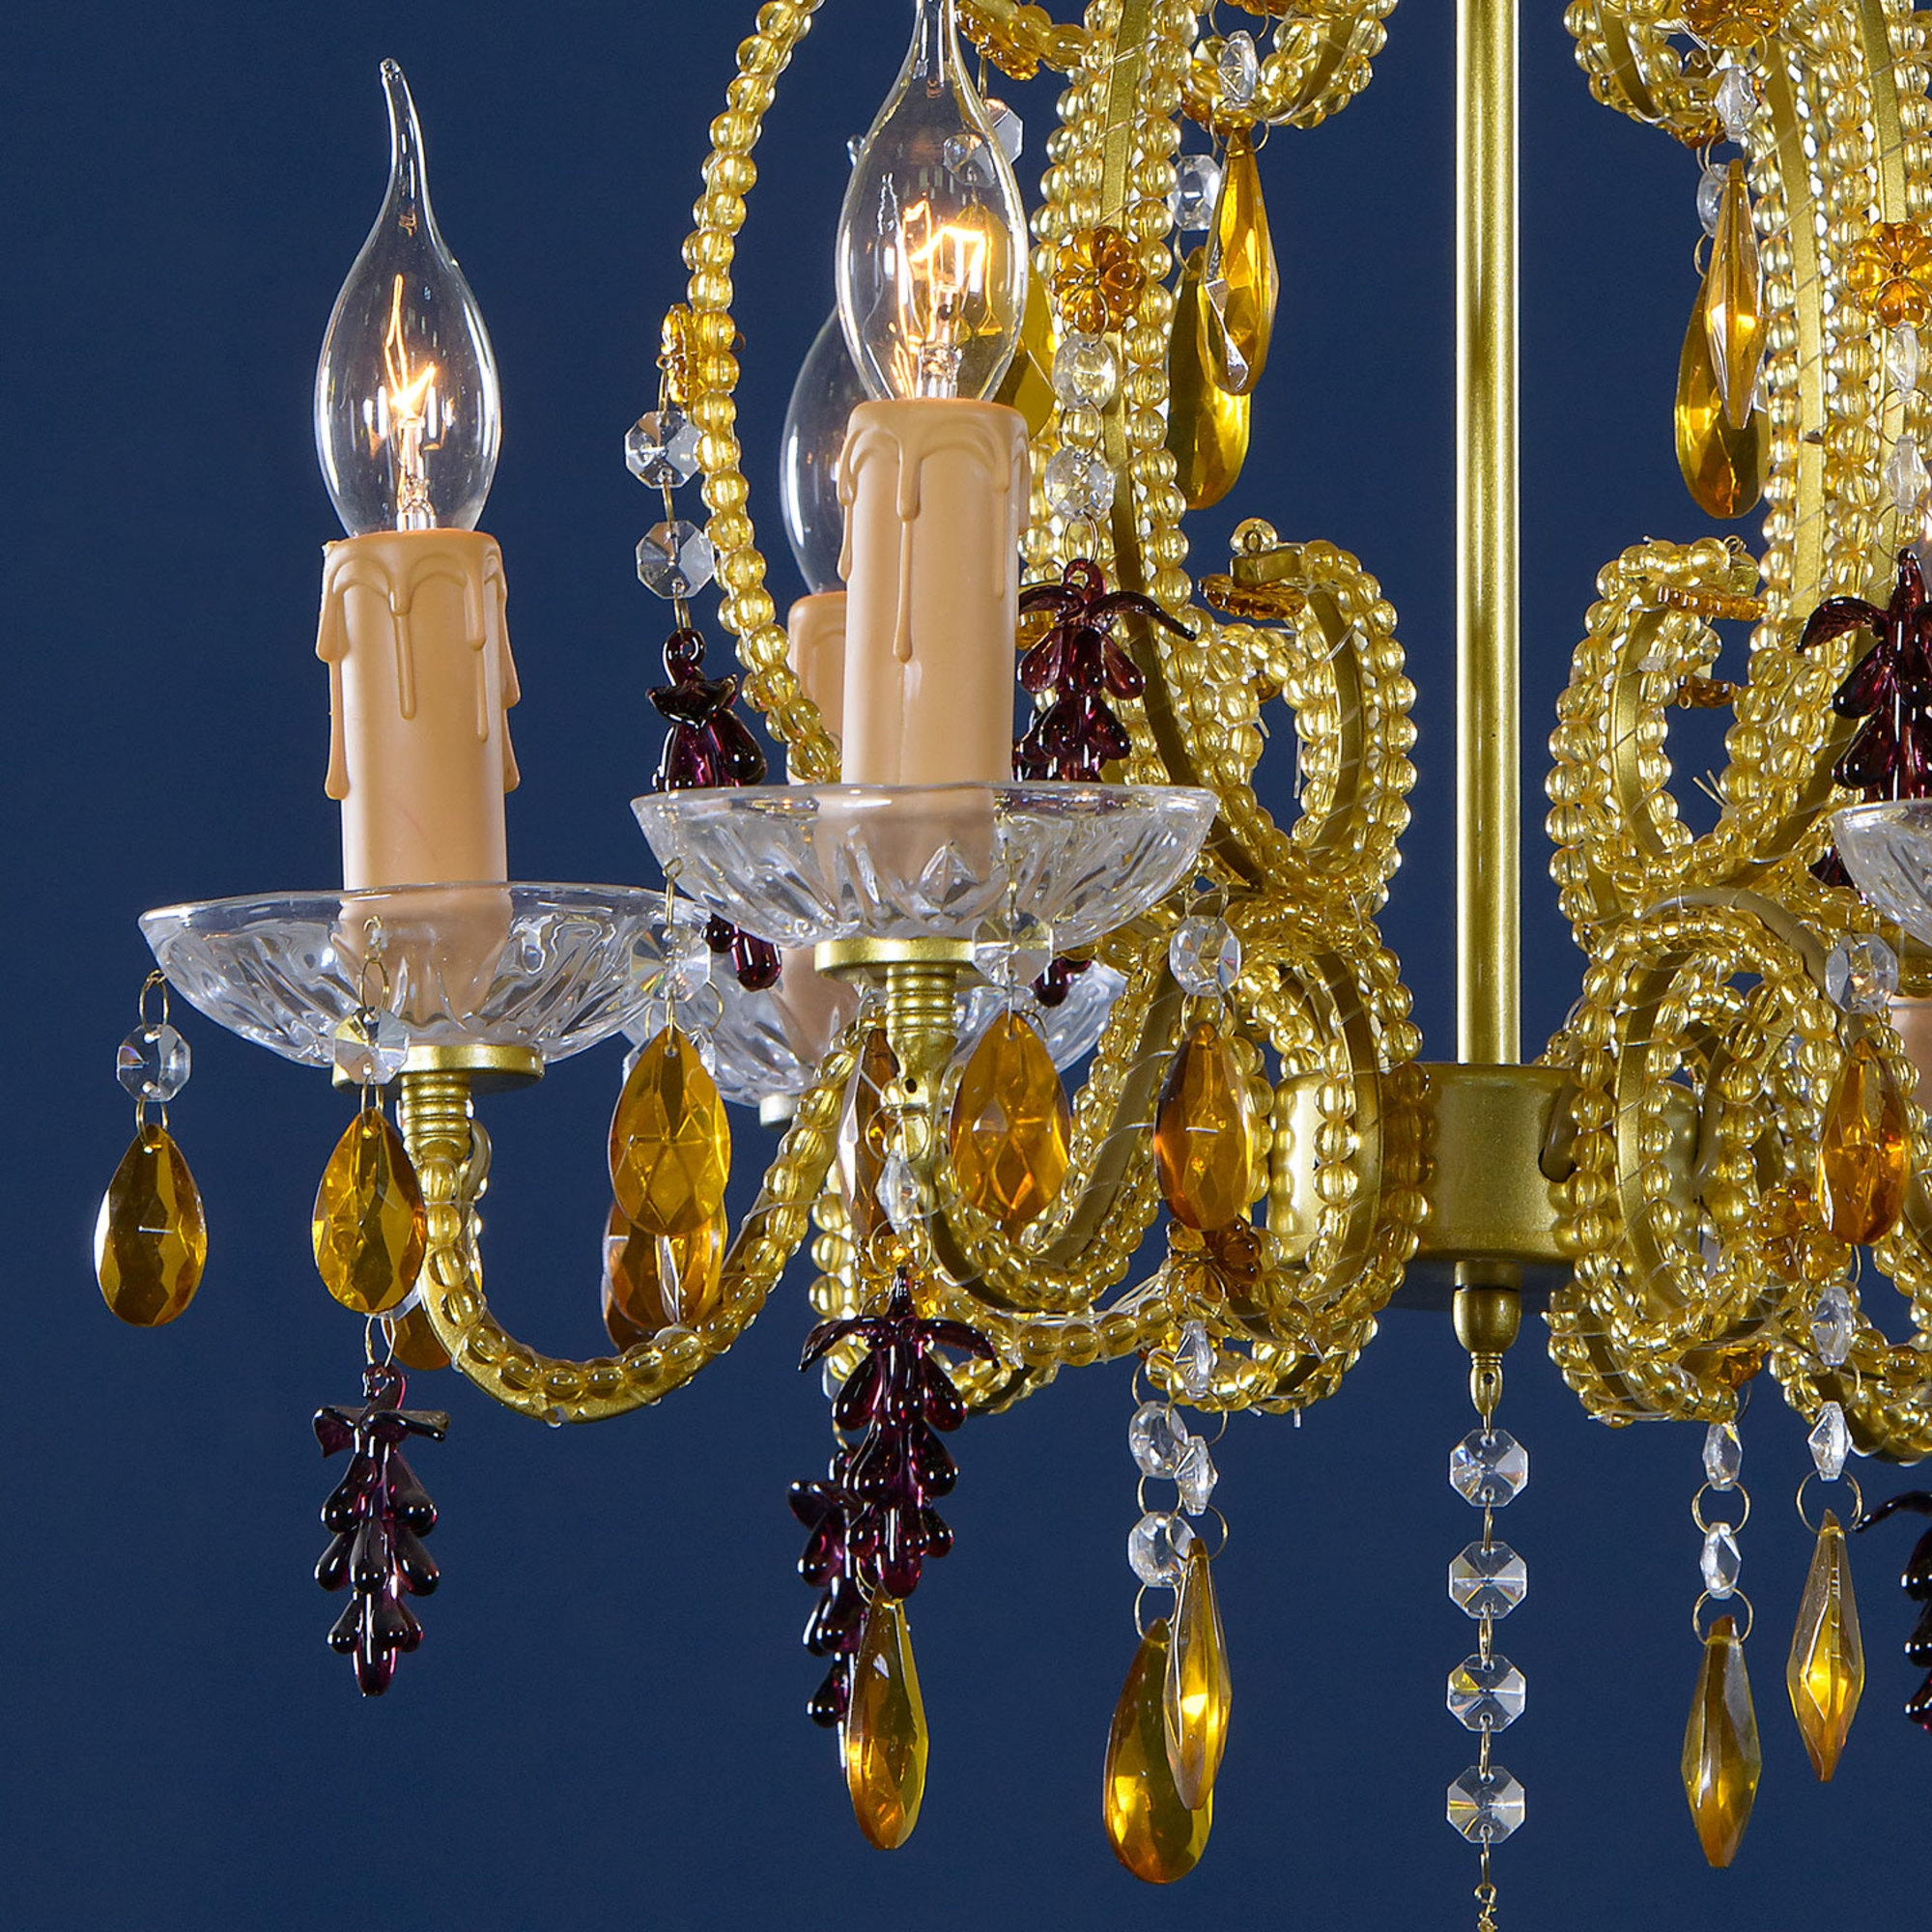 Vintage 6 Light Chandelier - Gold, Amber and Purple